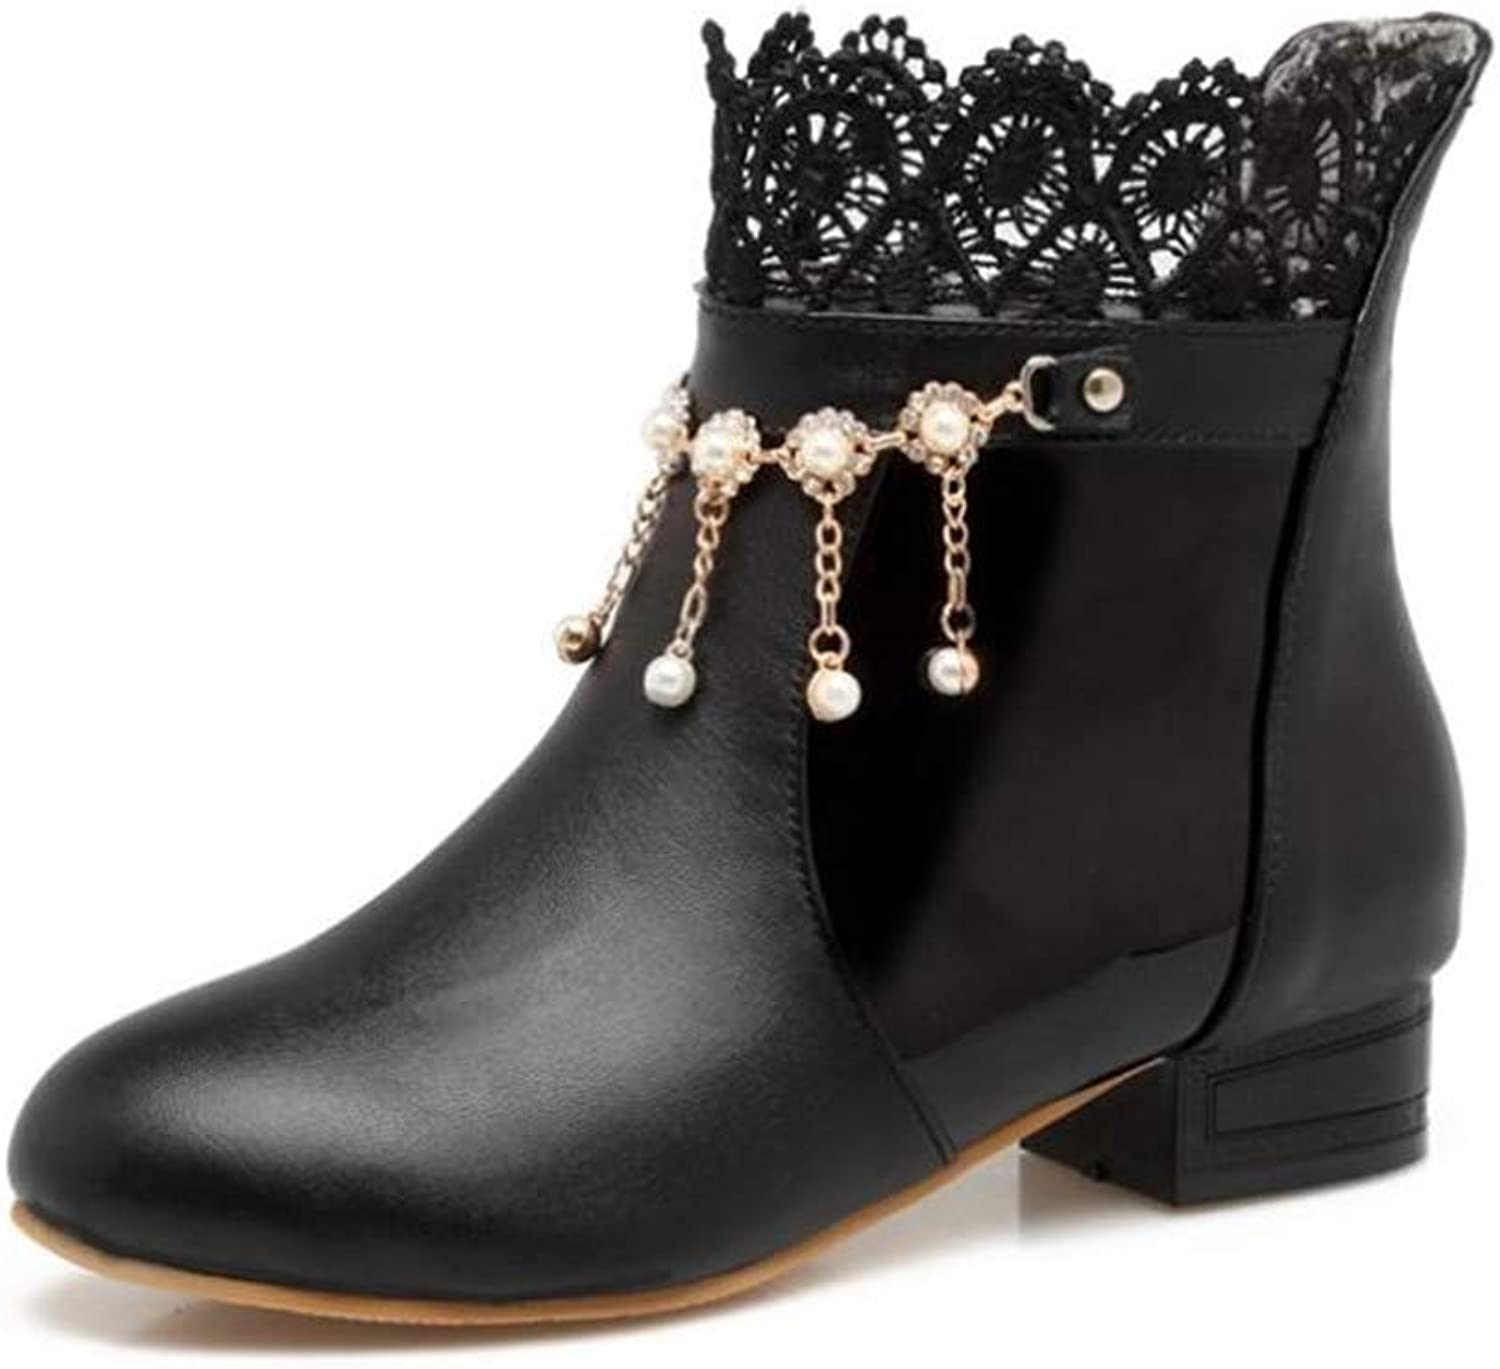 Woman's Short Boots Pearl Decorative Boots